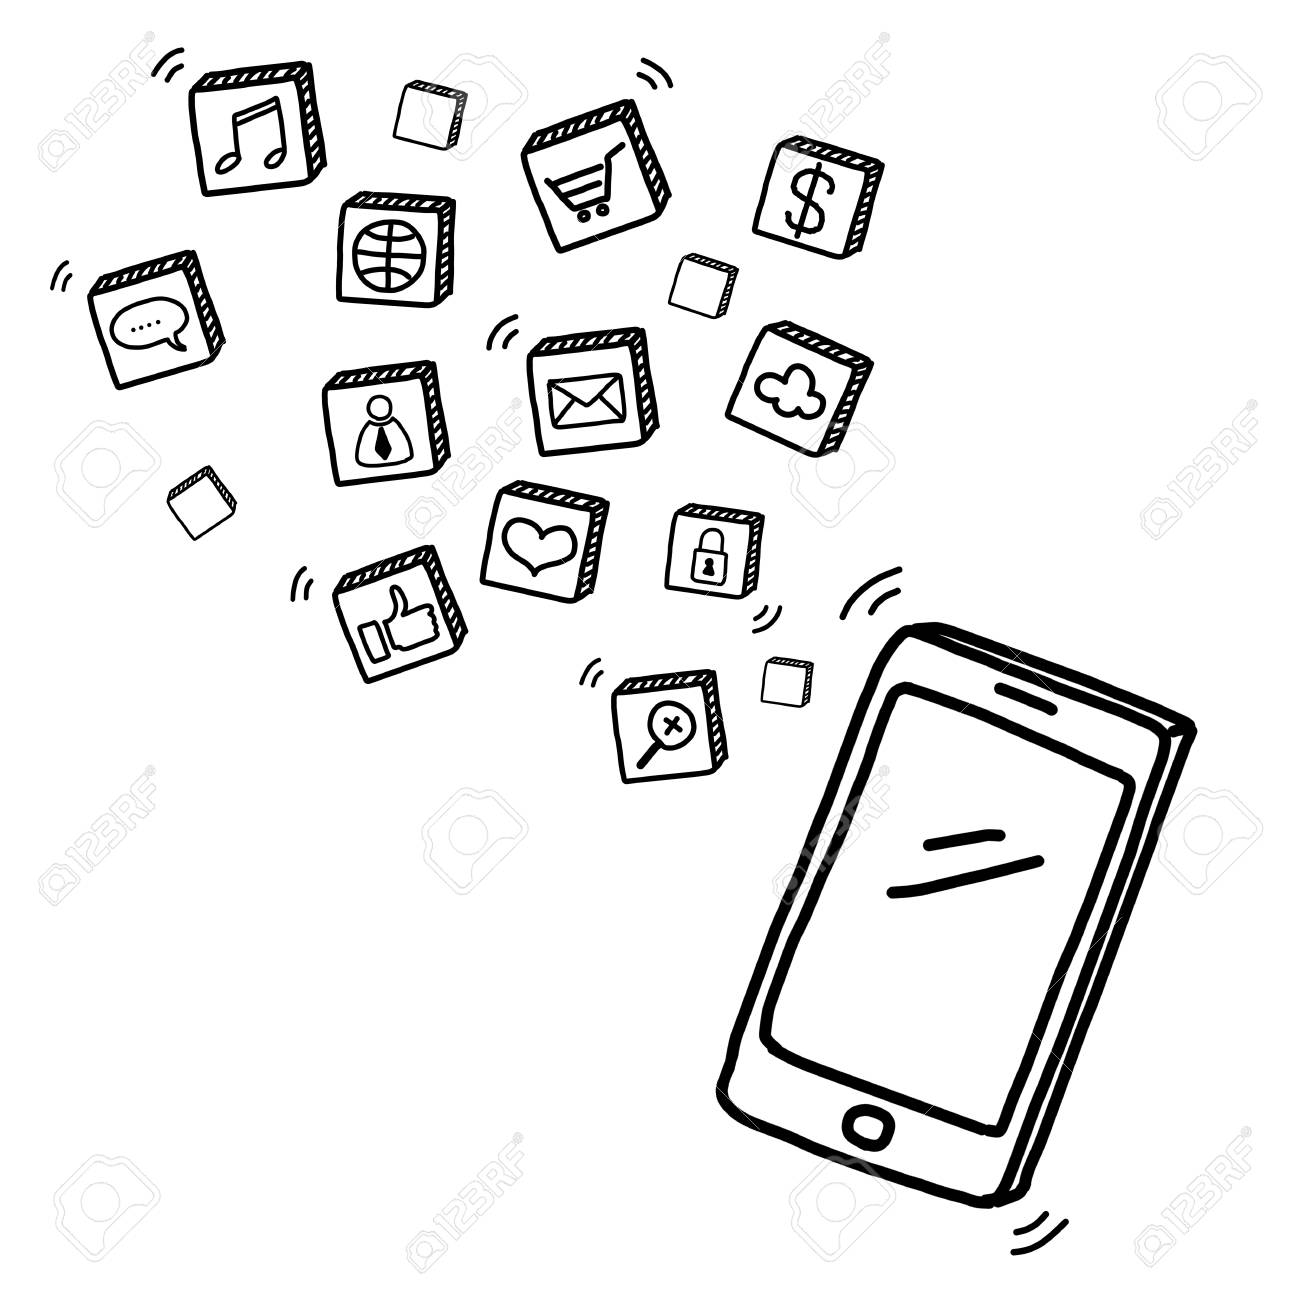 1300x1300 Hand Draw Mobile Phone With Social Media Concept Stock Photo